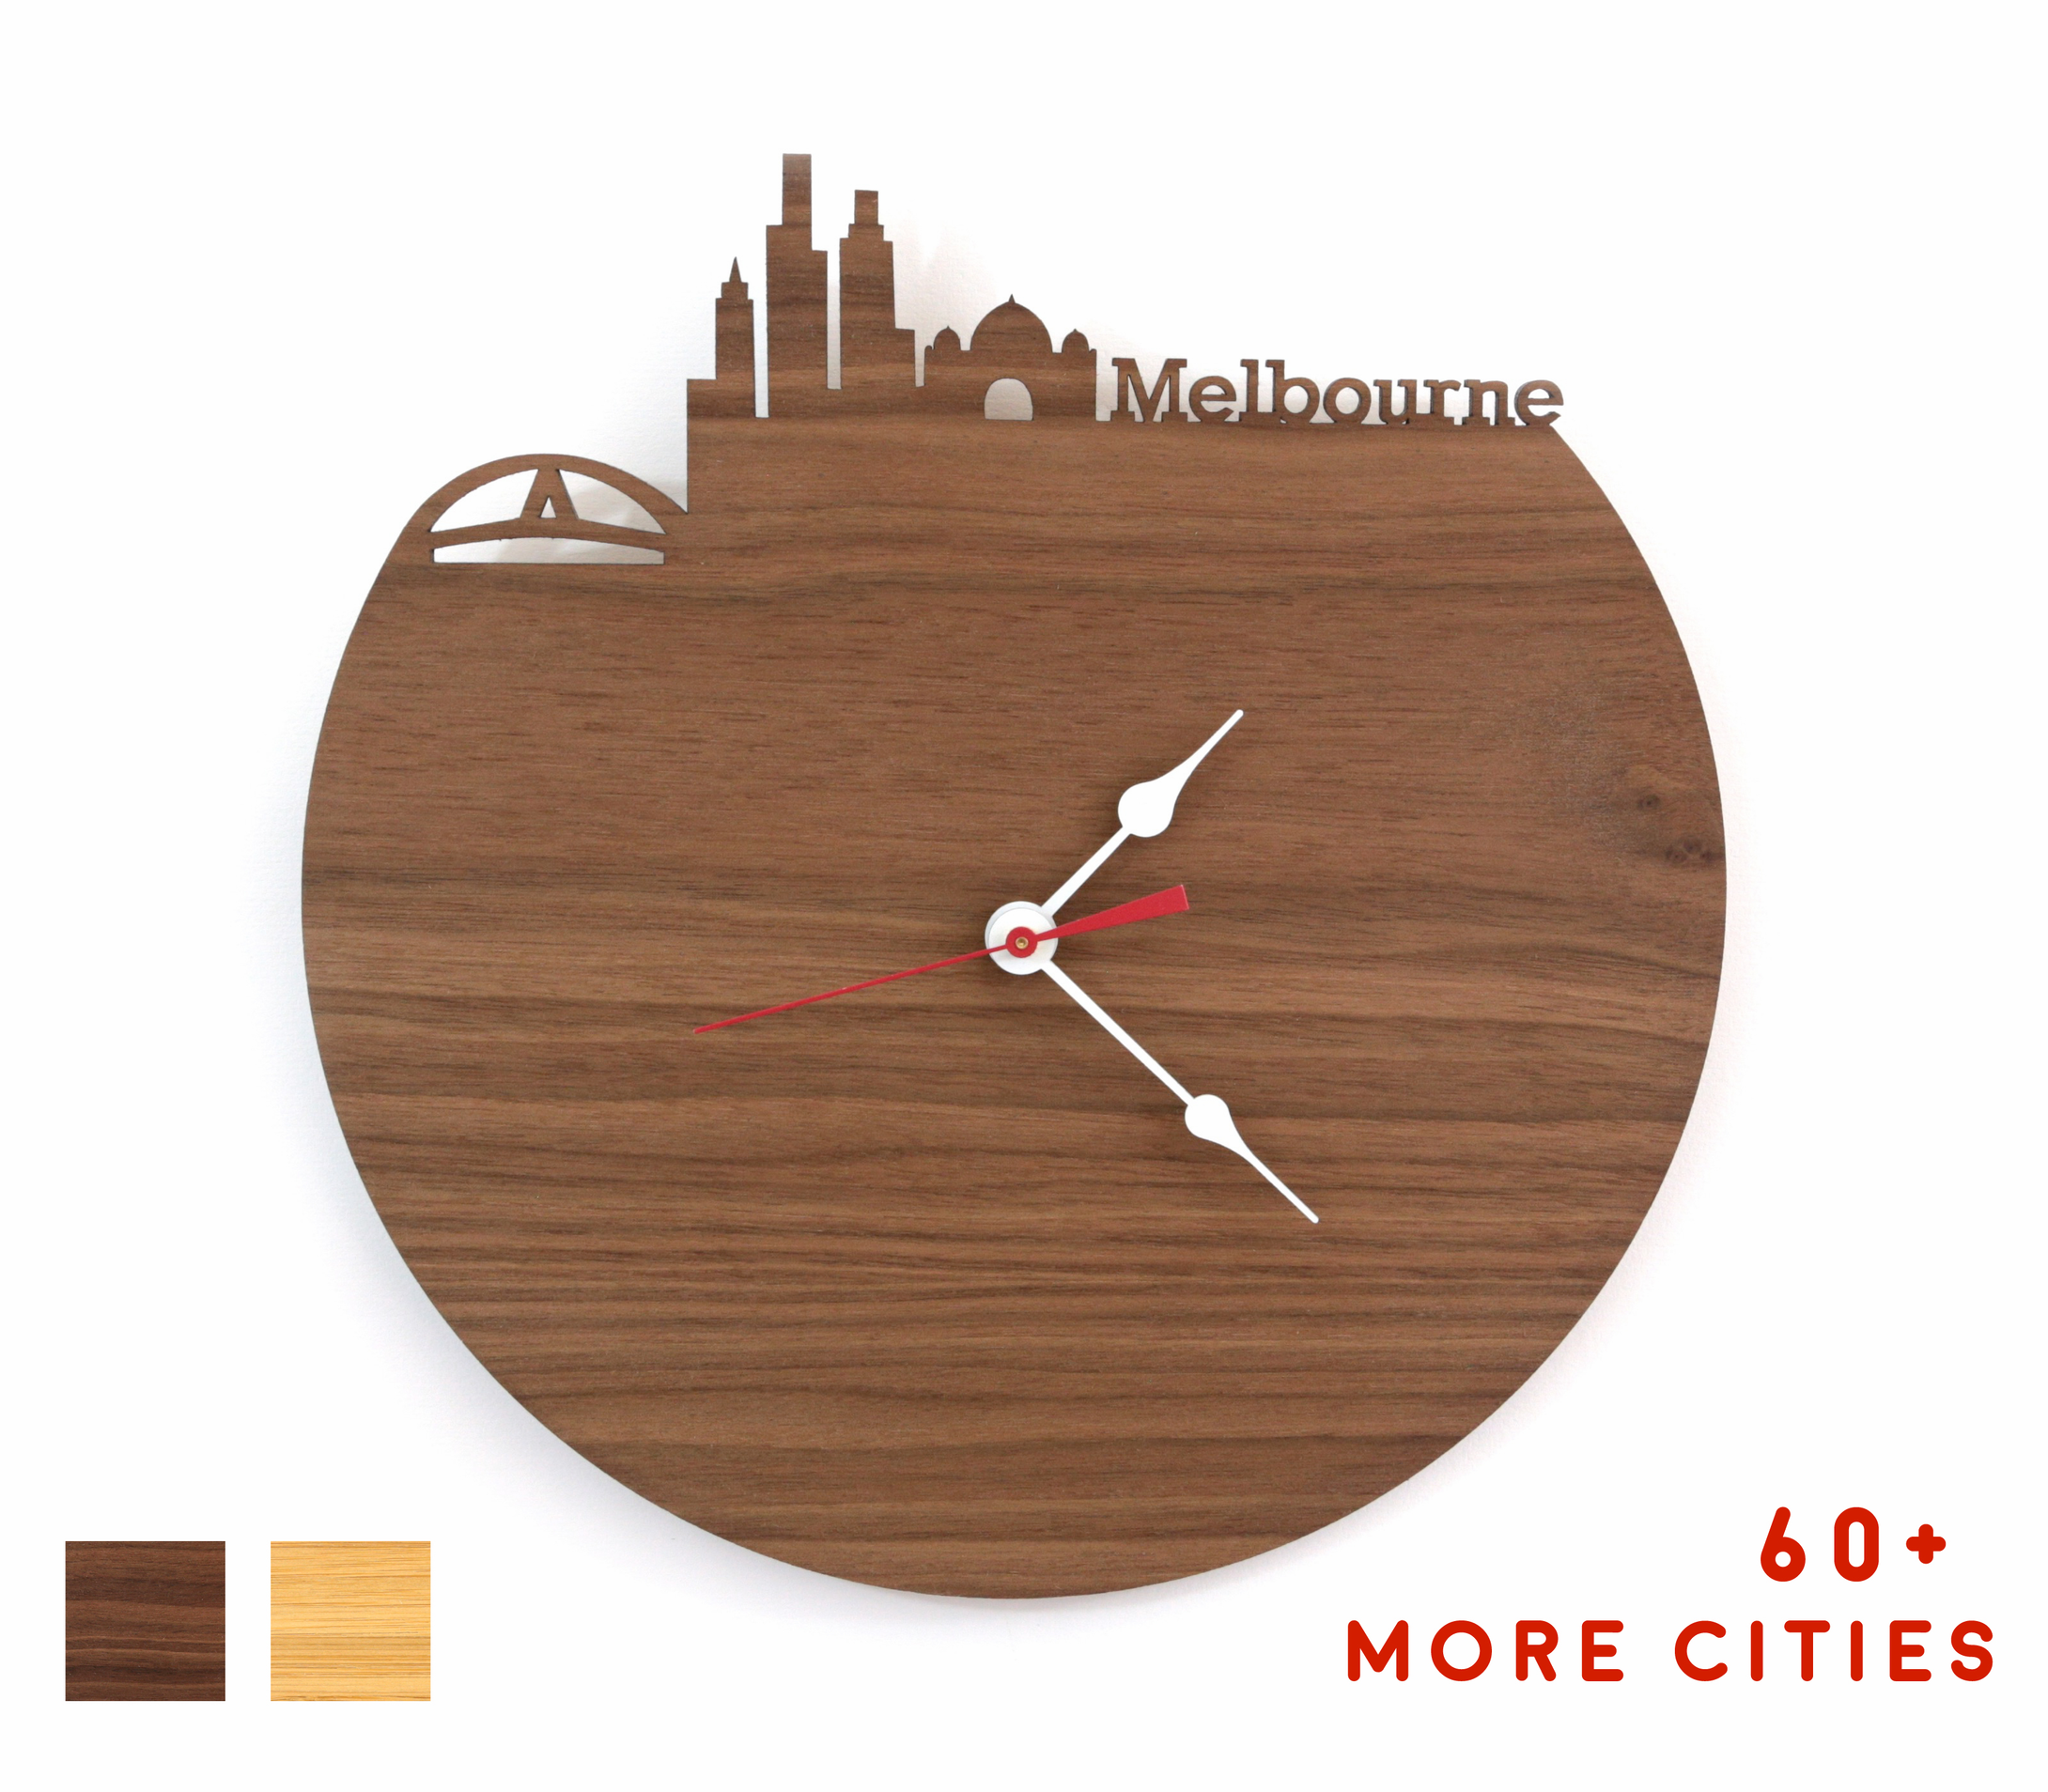 Melbourne Skyline Time Zone Clock - Cityscape Art Clock - Long Distance Relationship Gift